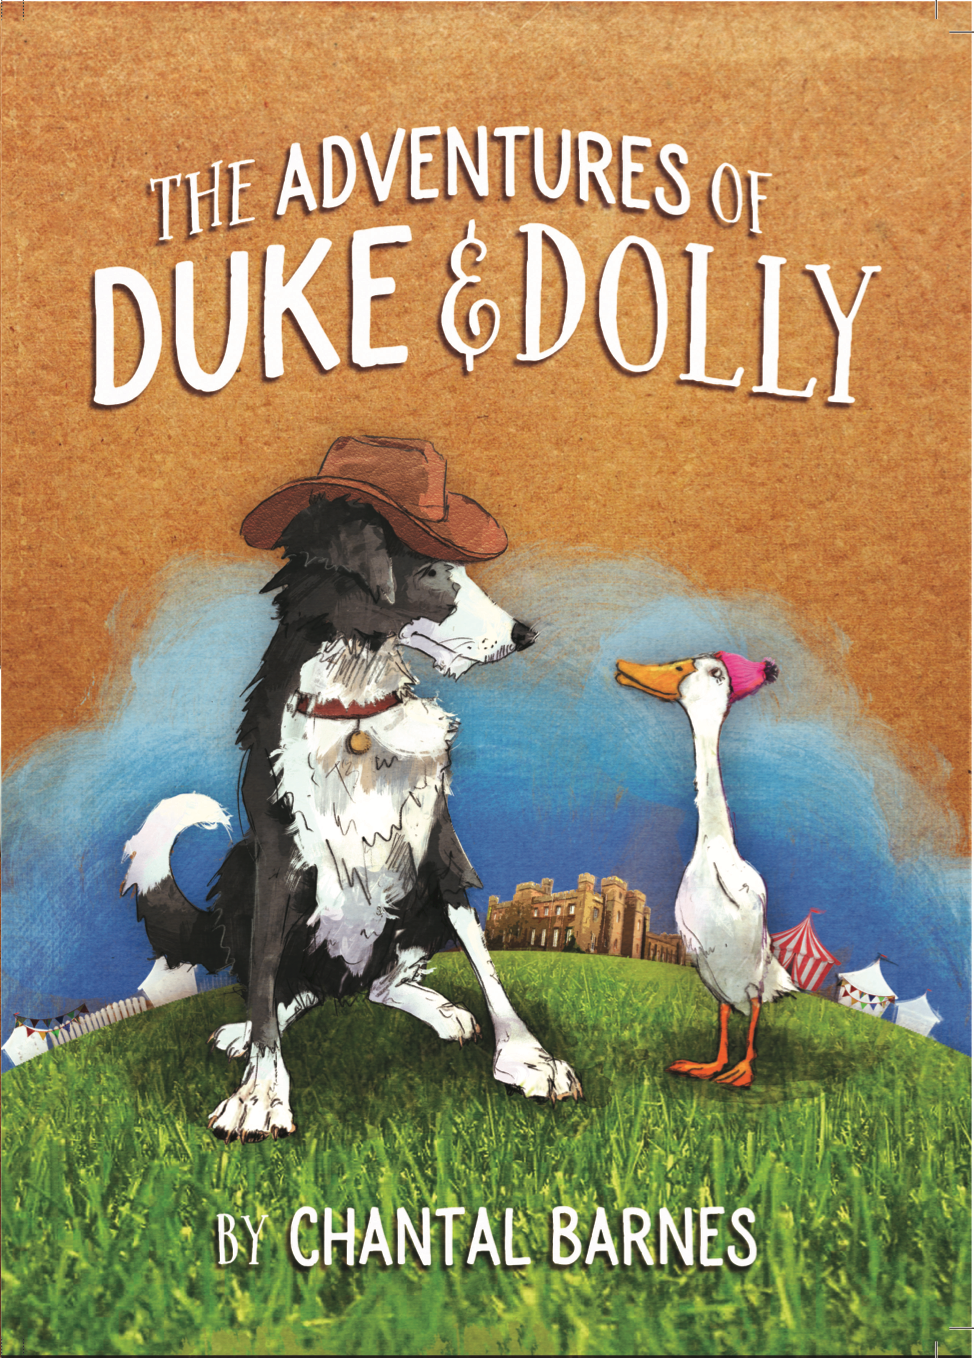 The-Adventures-Of-Duke-and-Dolly